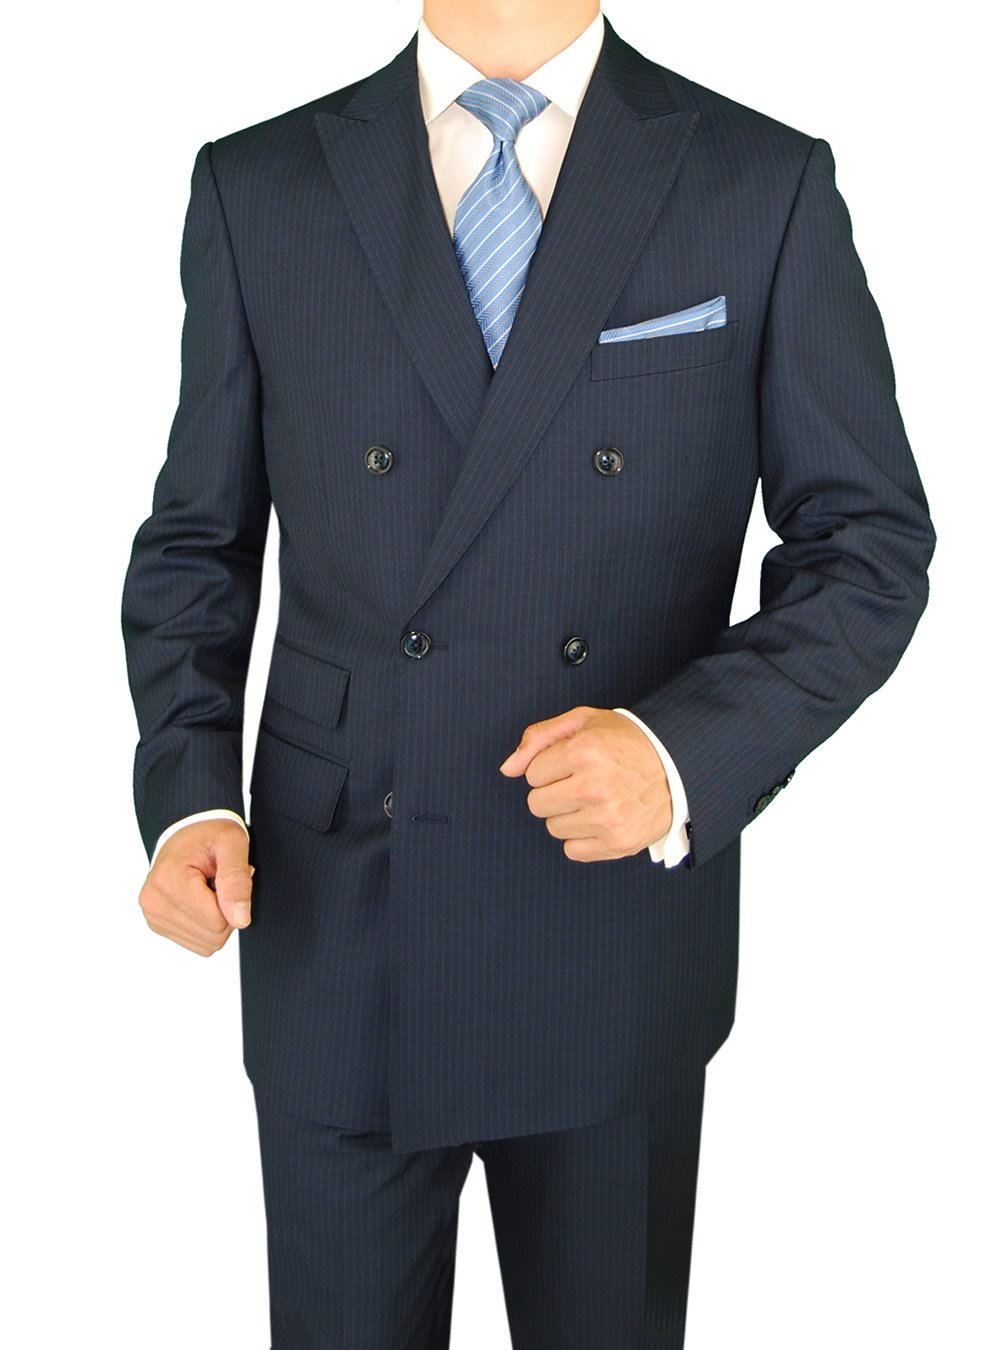 Gino Valentino 2 Piece Men's Double Breasted Ticket Pocket Stripe Navy Suit (40 Regular US / 50 Regular EU)